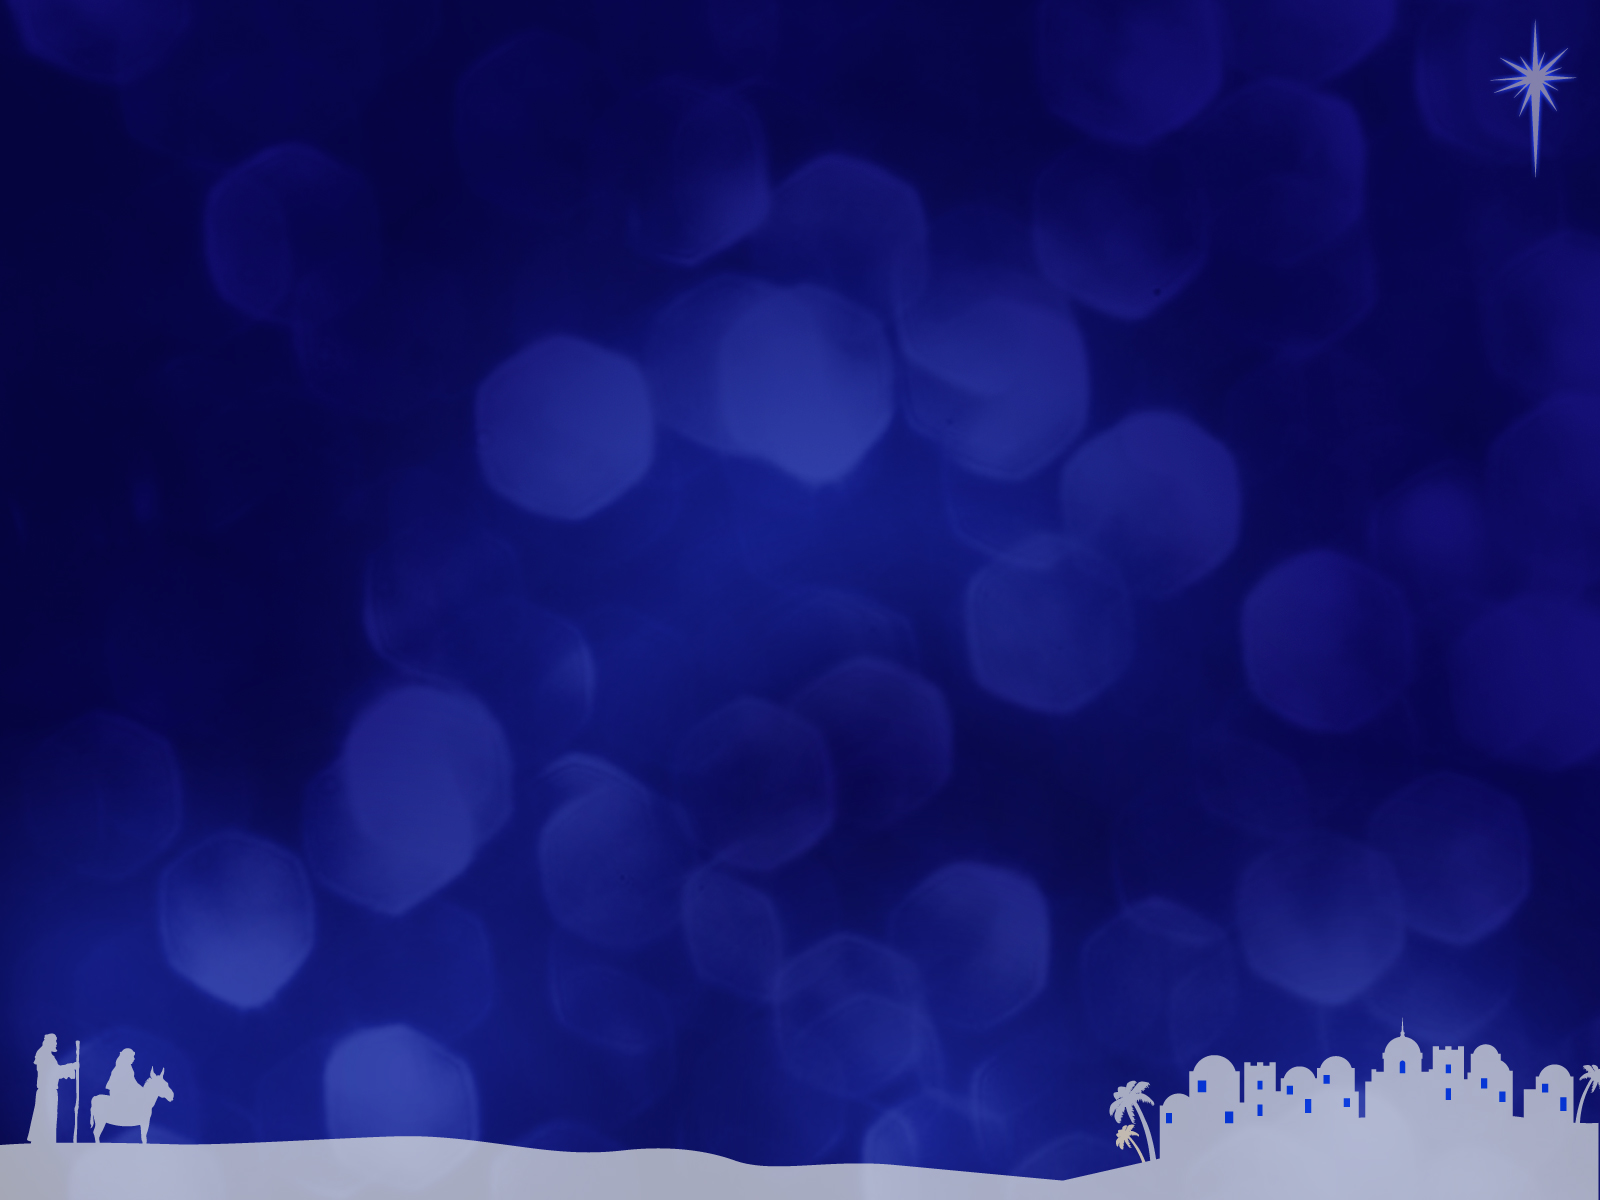 free advent powerpoint backgrounds | intersections, Modern powerpoint